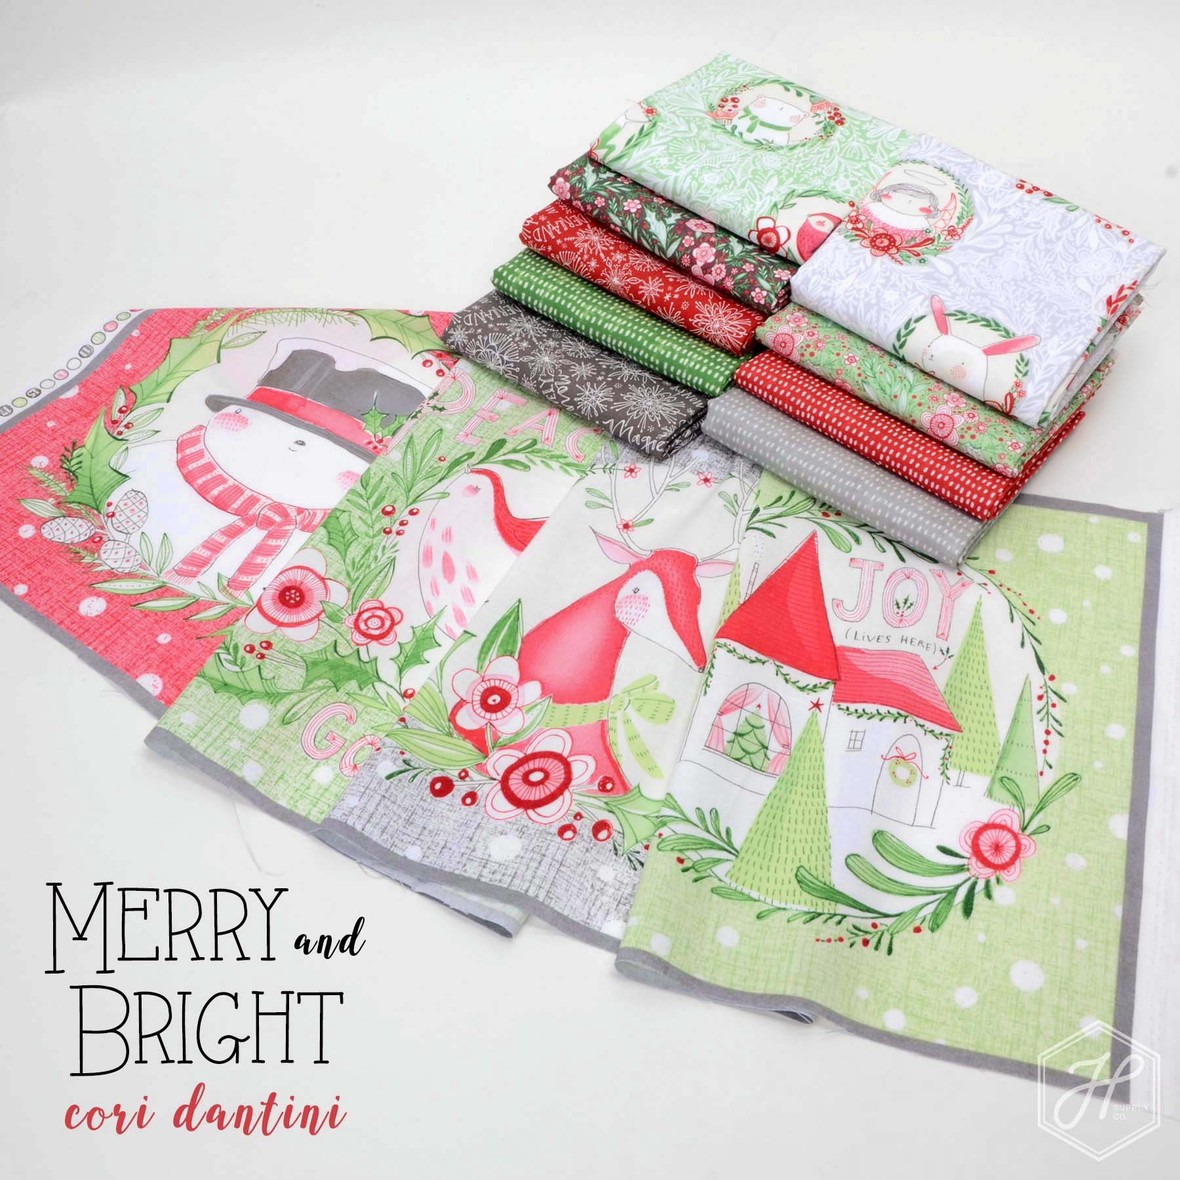 Merry and Bright Fabric Poster Cori Dantini at Hawthorne Supply Co